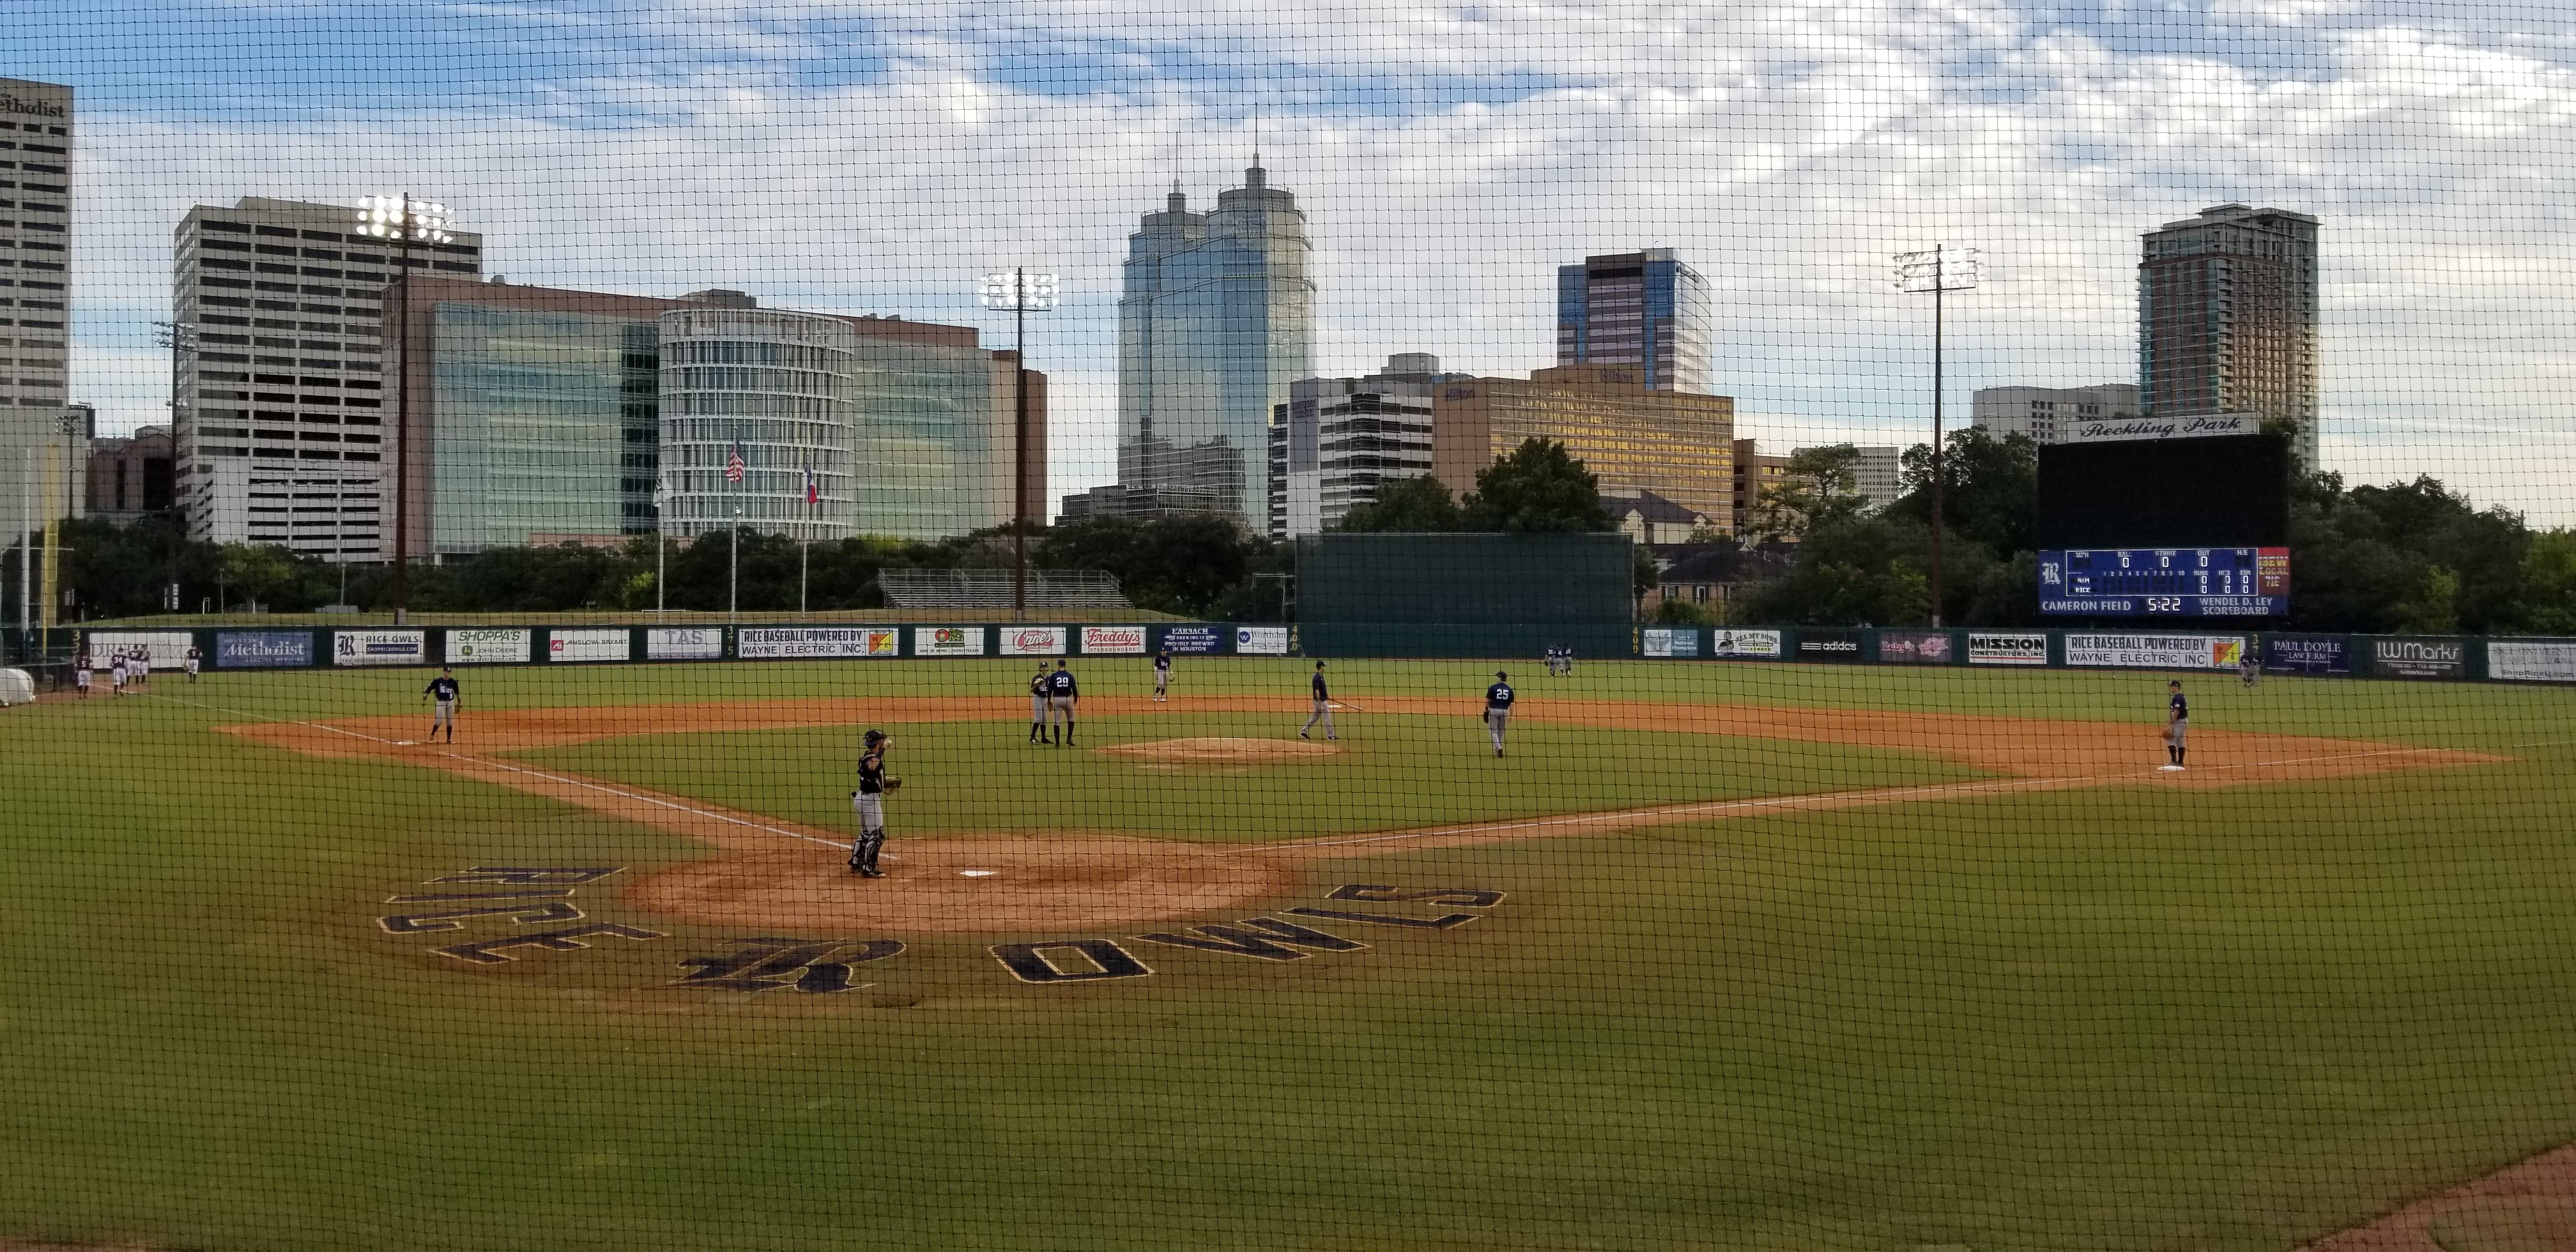 Rice baseball, Reckling Park